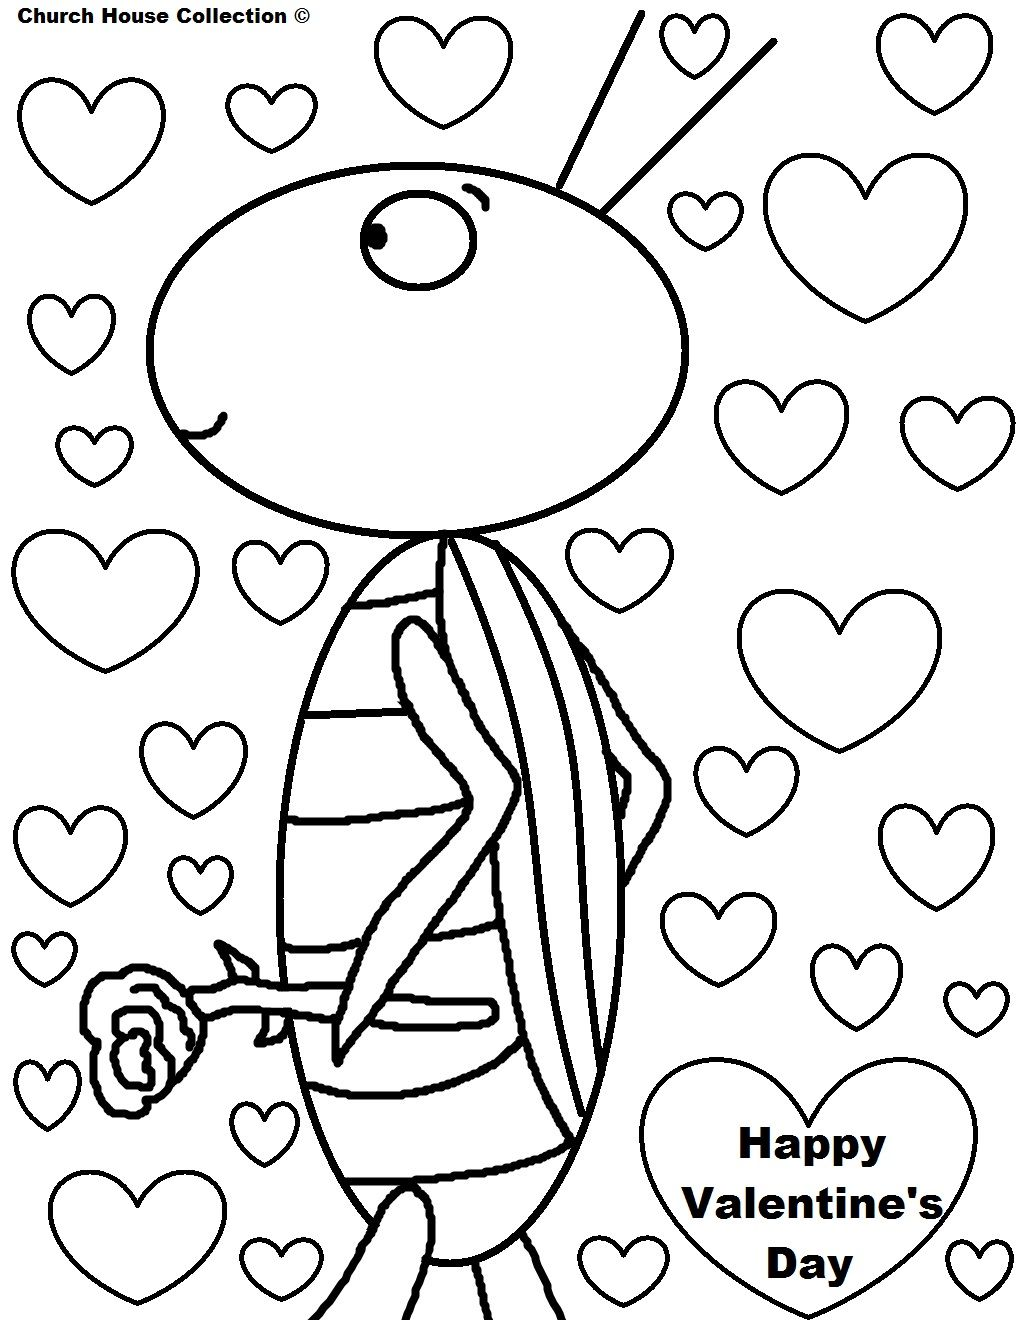 Valentines Day Coloring Page Valentines Day Coloring Sheets .collection Blog Valentine's